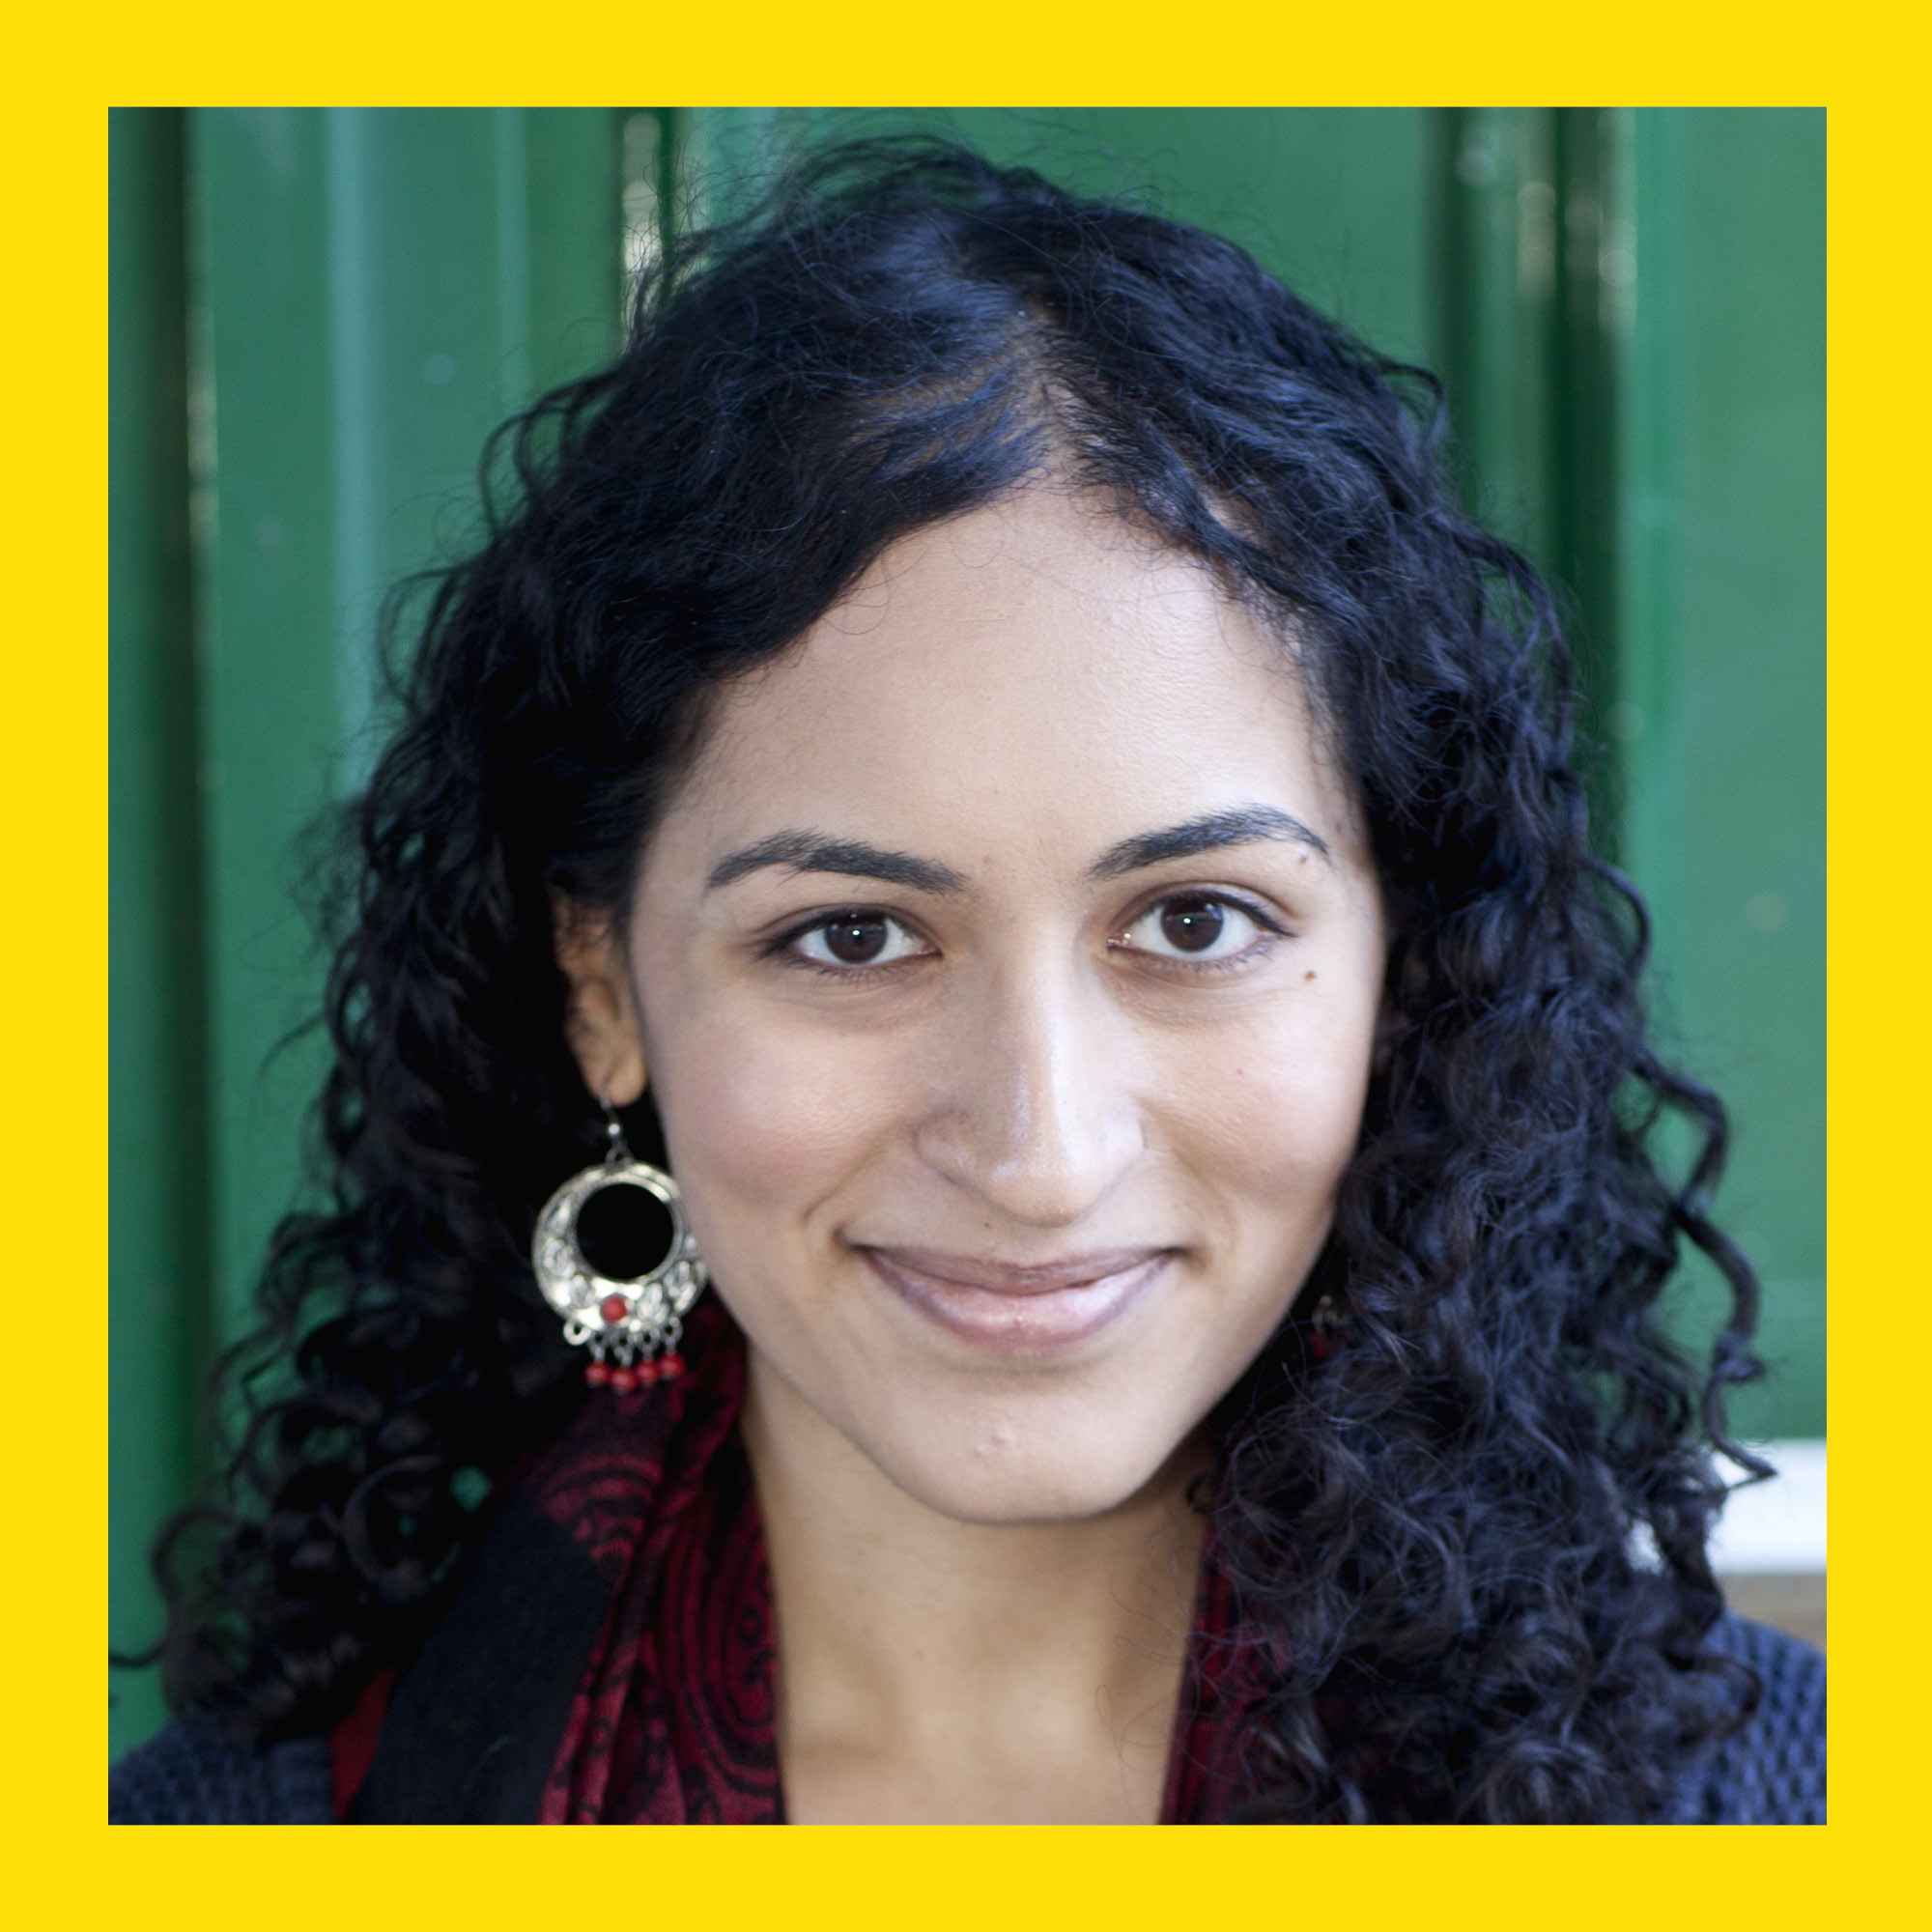 - Tasha Suri was born in Harrow, North-West London. The daughter of Punjabi parents, she spent many childhood holidays exploring India with her family, and still fondly remembers the time she was chased around the Taj Mahal by an irate tour guide. She studied English and Creative Writing at Warwick University, and now lives in London where she works as a librarian. To no one's surprise, she owns a cat. A love of period Bollywood films, history and mythology led her to begin writing South Asian influenced fantasy